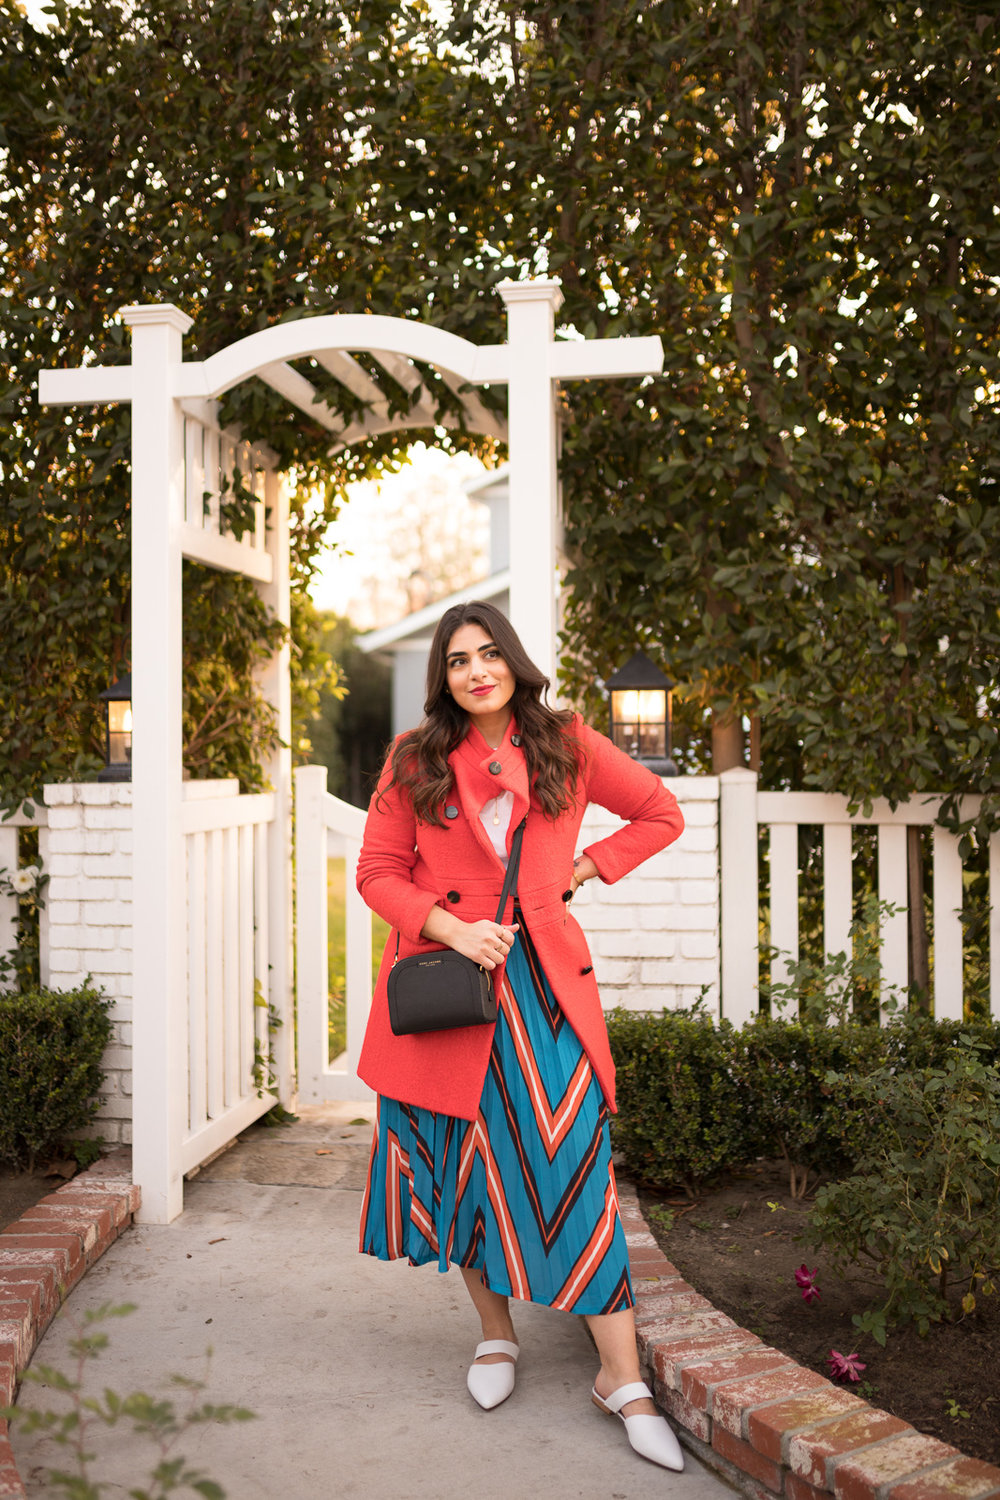 Chevron print midi skirt nordstrom rack with Red coat and White slides Nordstrom